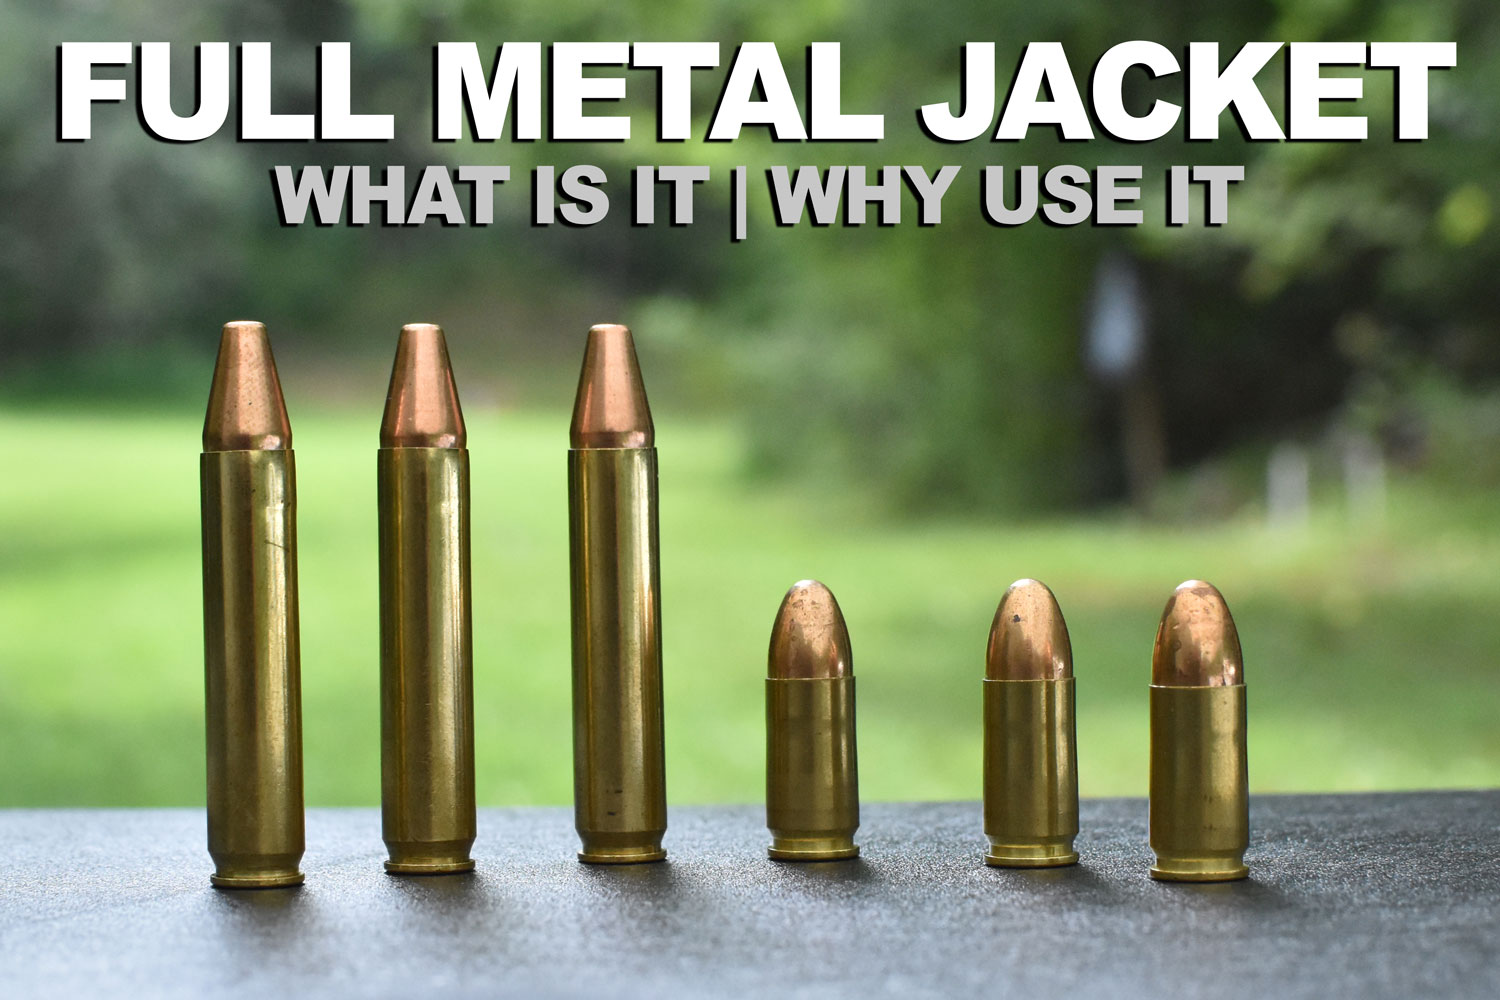 Full metal jacket ammo and bullets